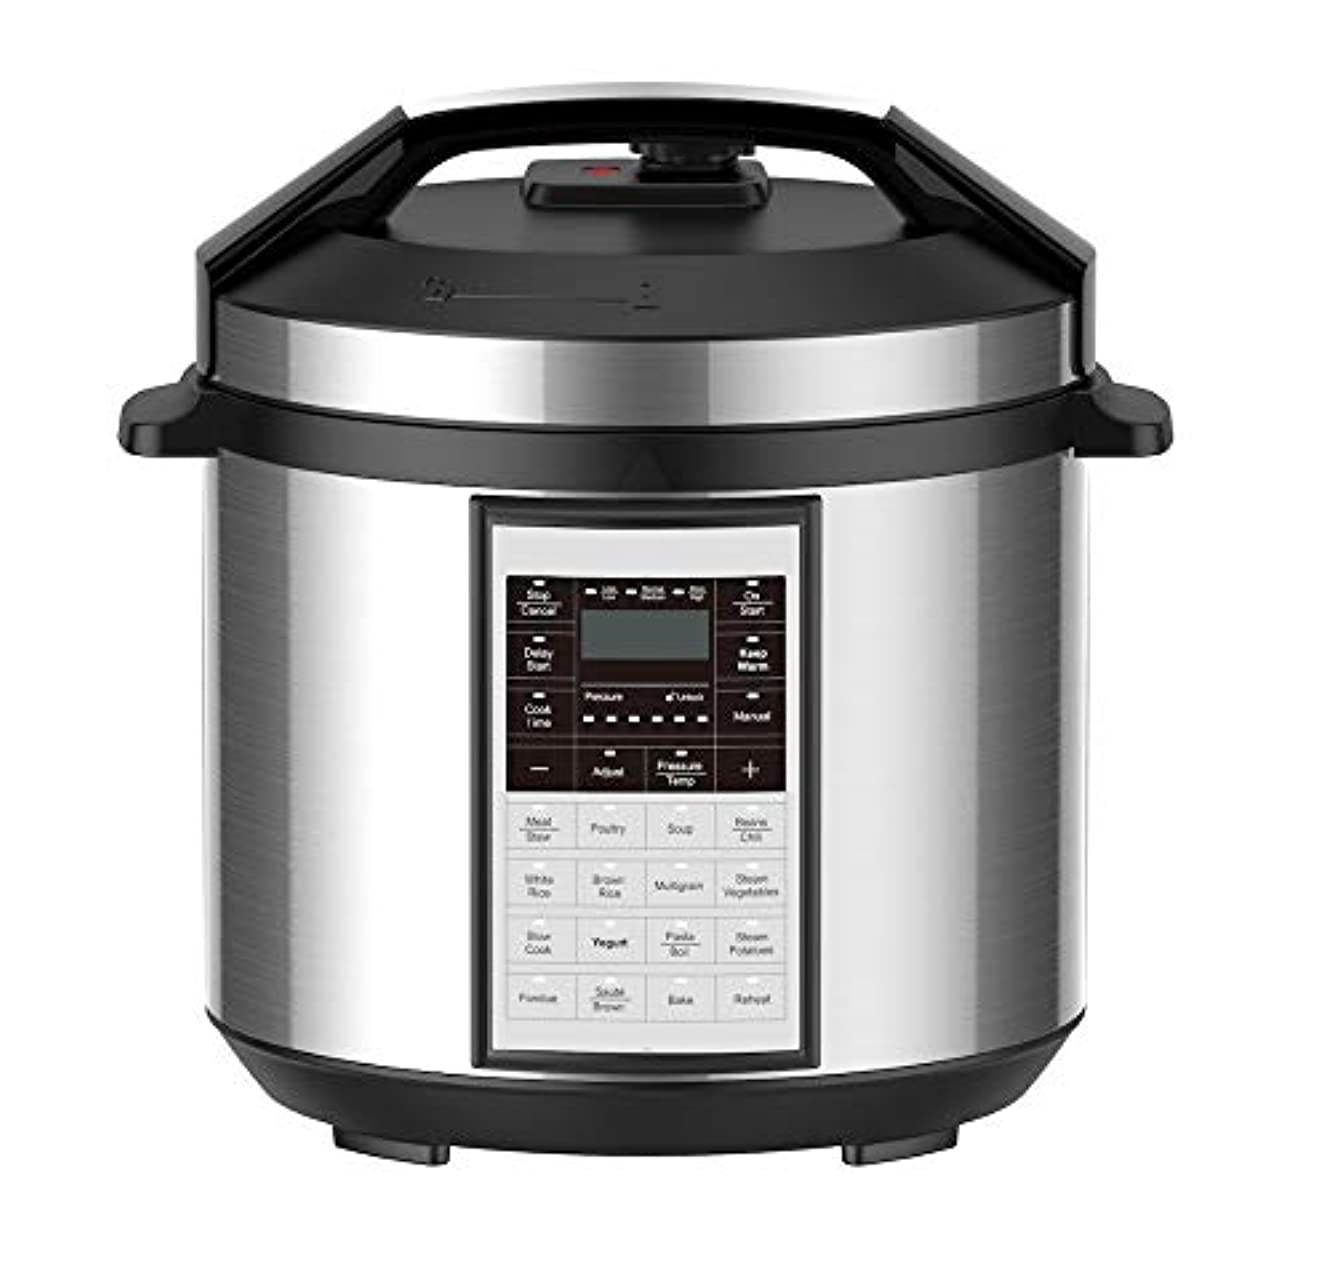 Electric pressure MBail cooker stainless steel